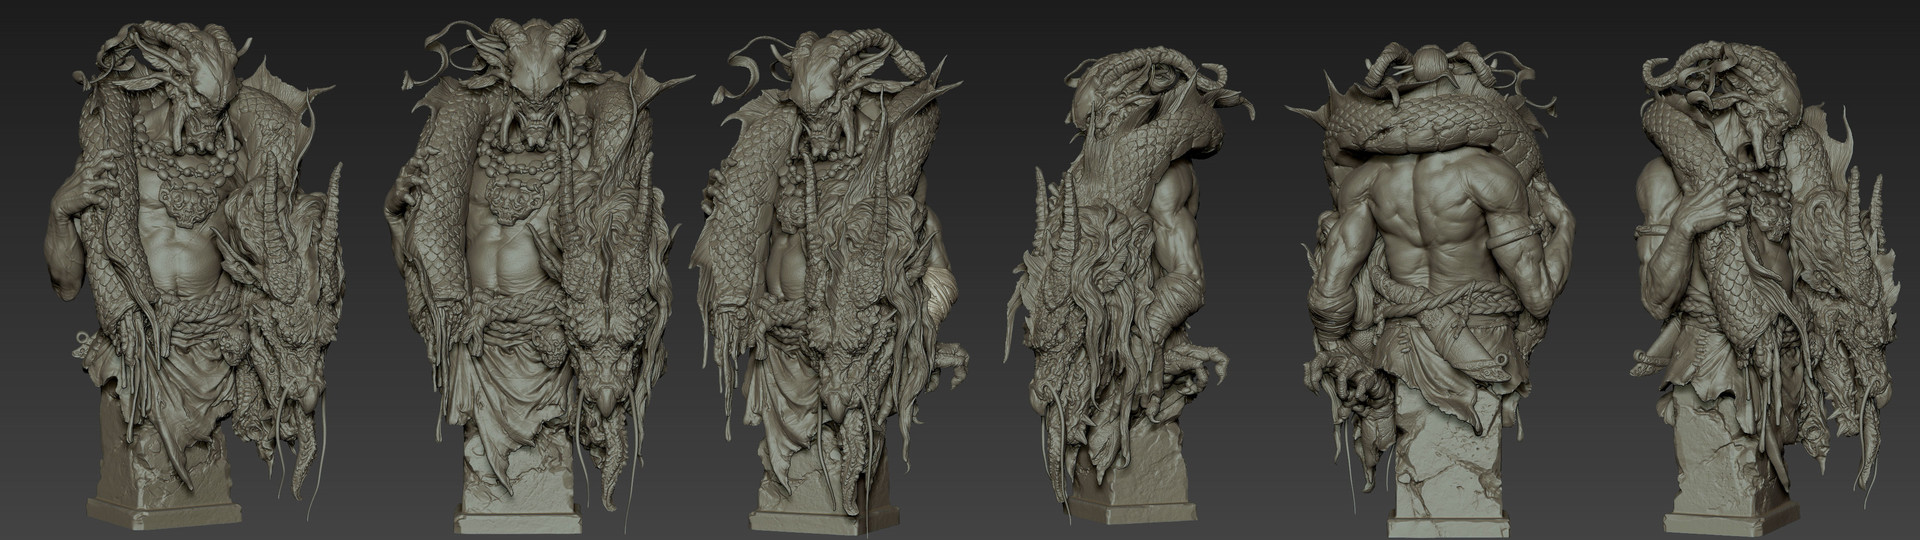 ZBrush_Screenshot